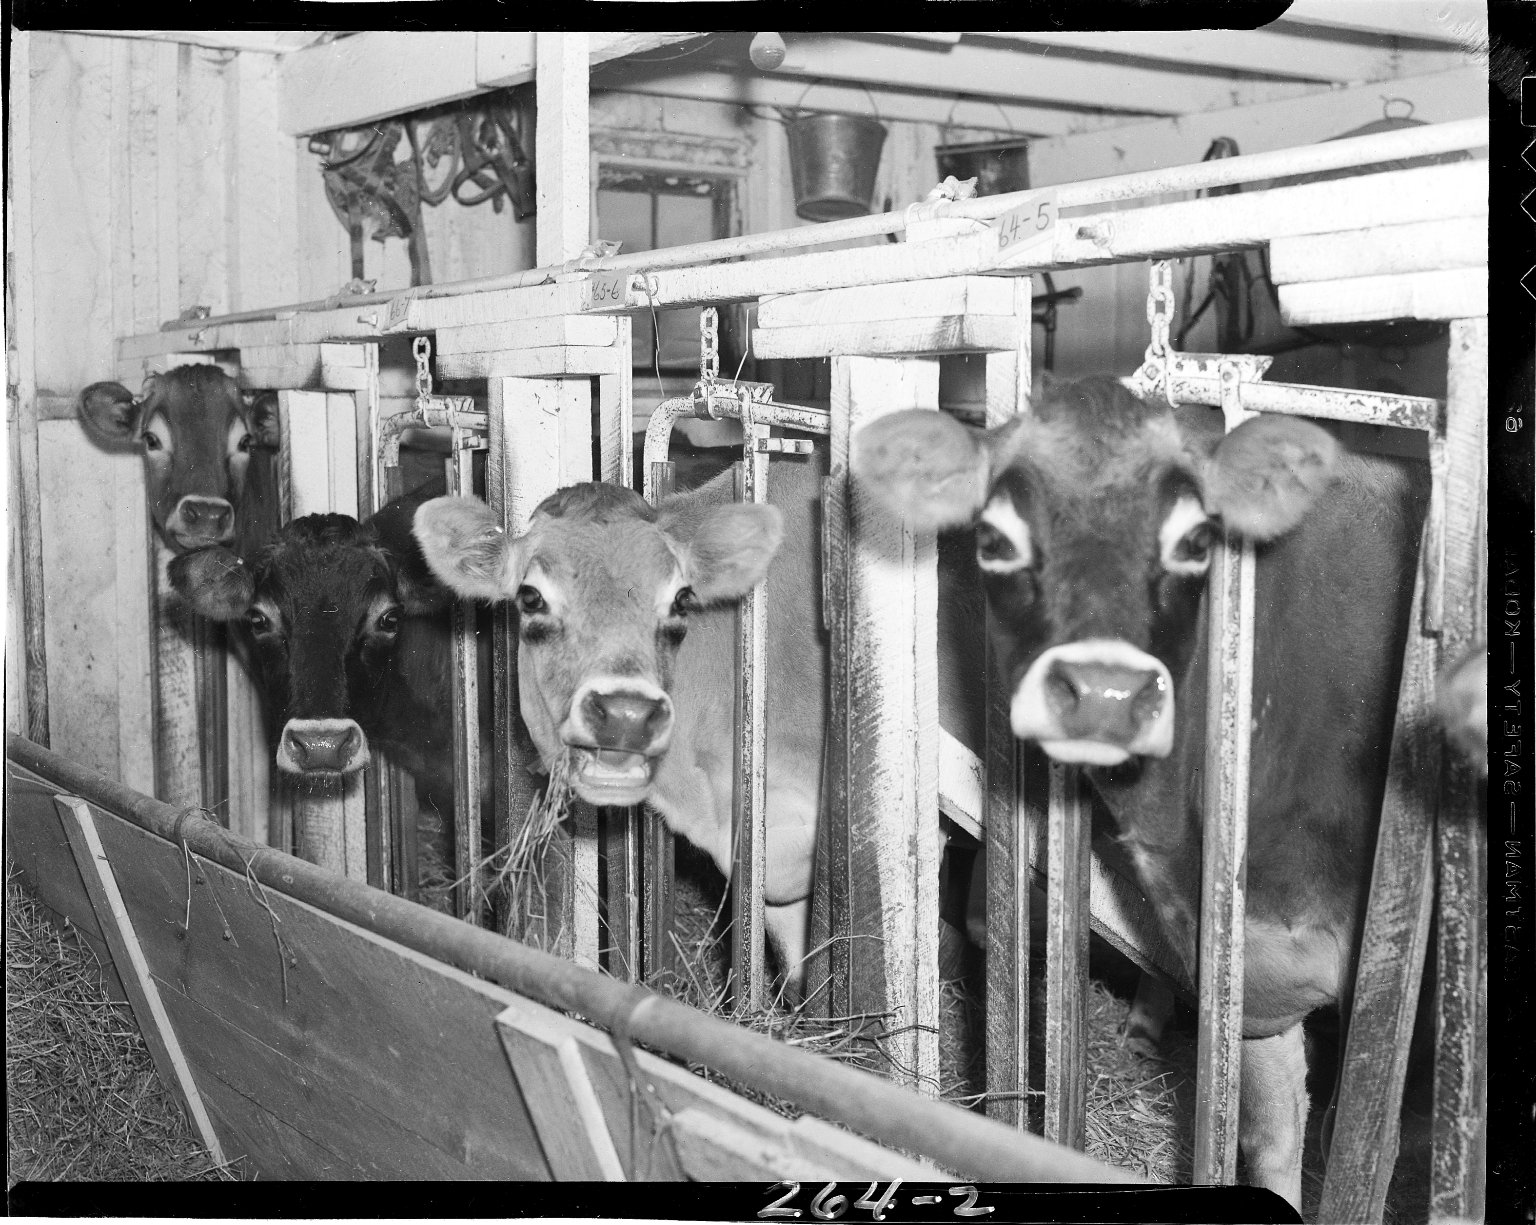 Cream Top Creamery, cows in a barn